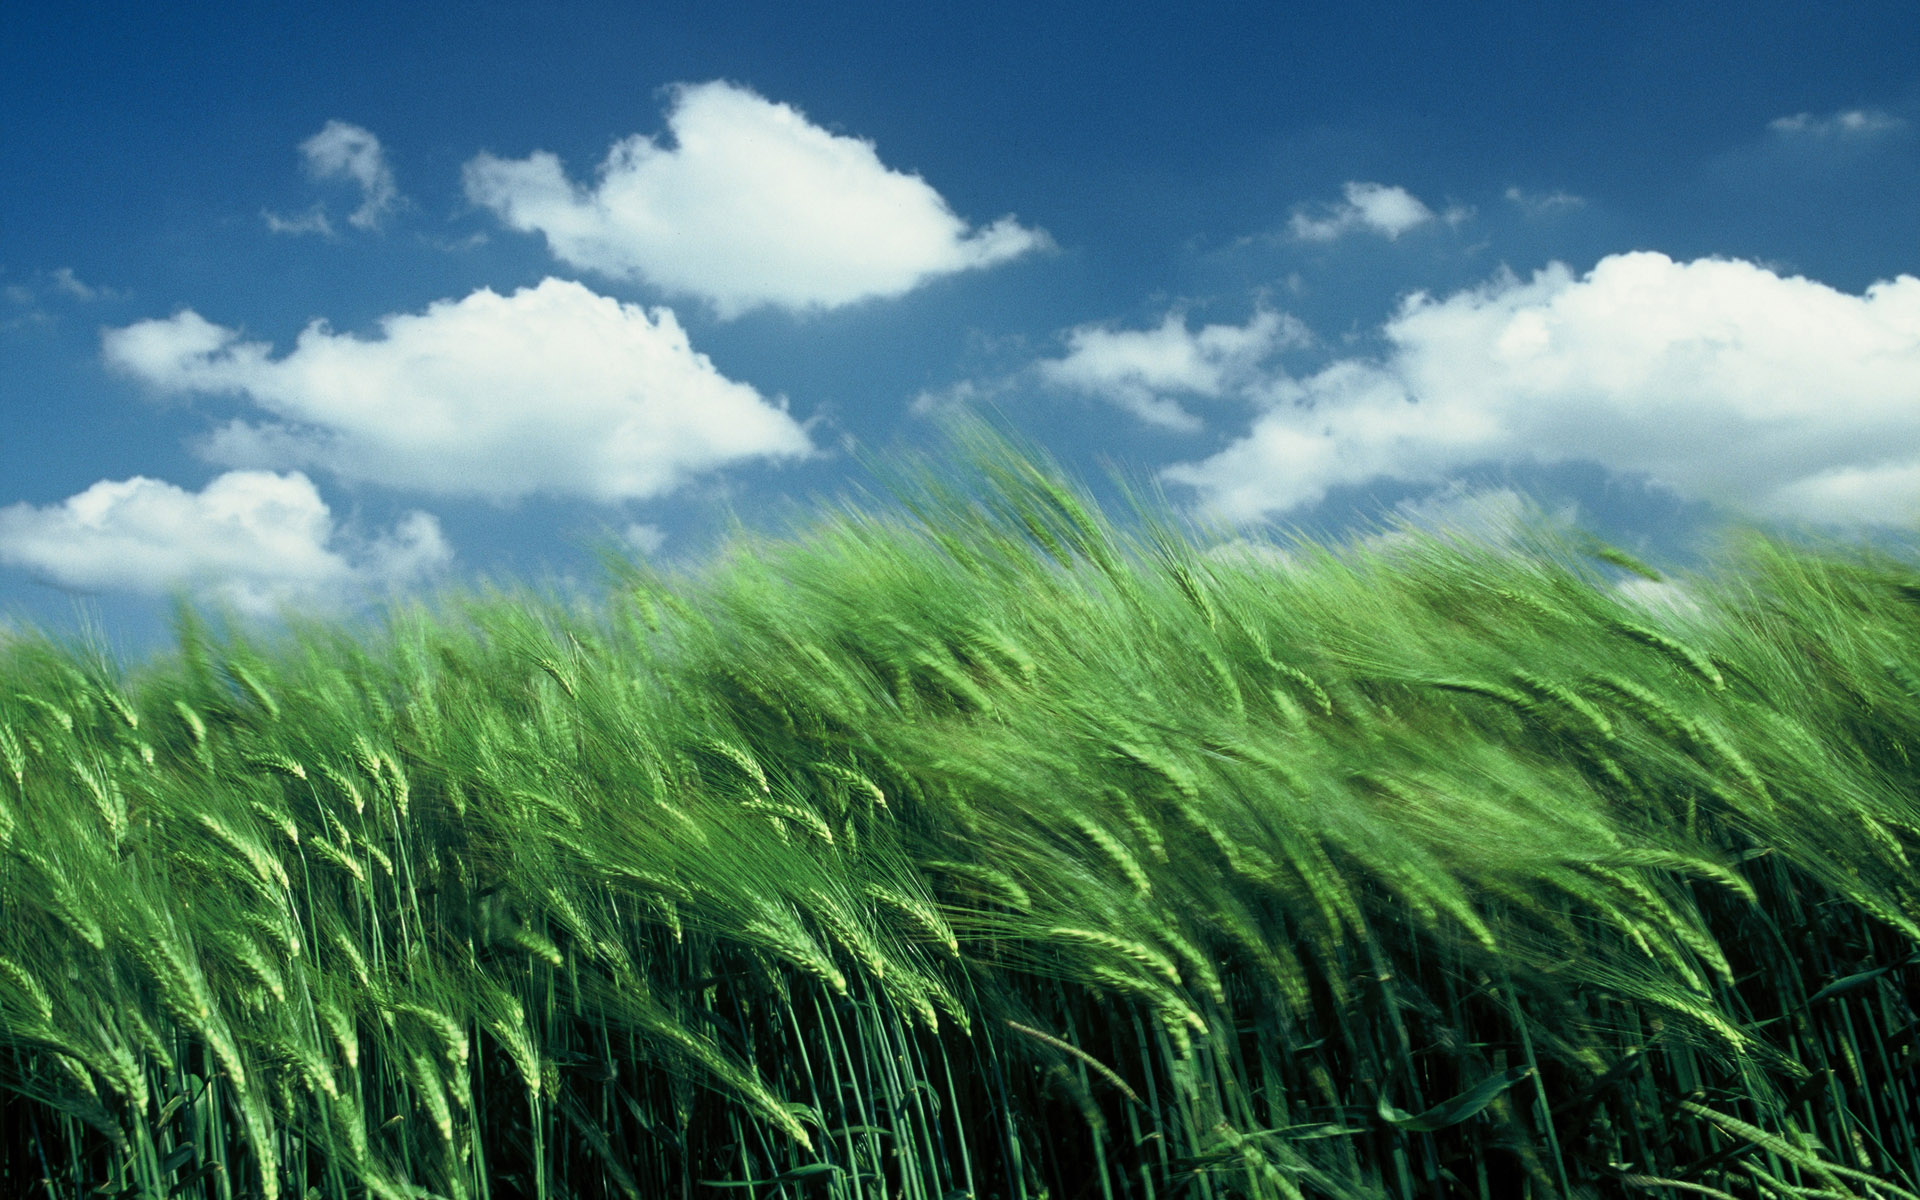 Cornfield Wallpapers, Pictures, Images